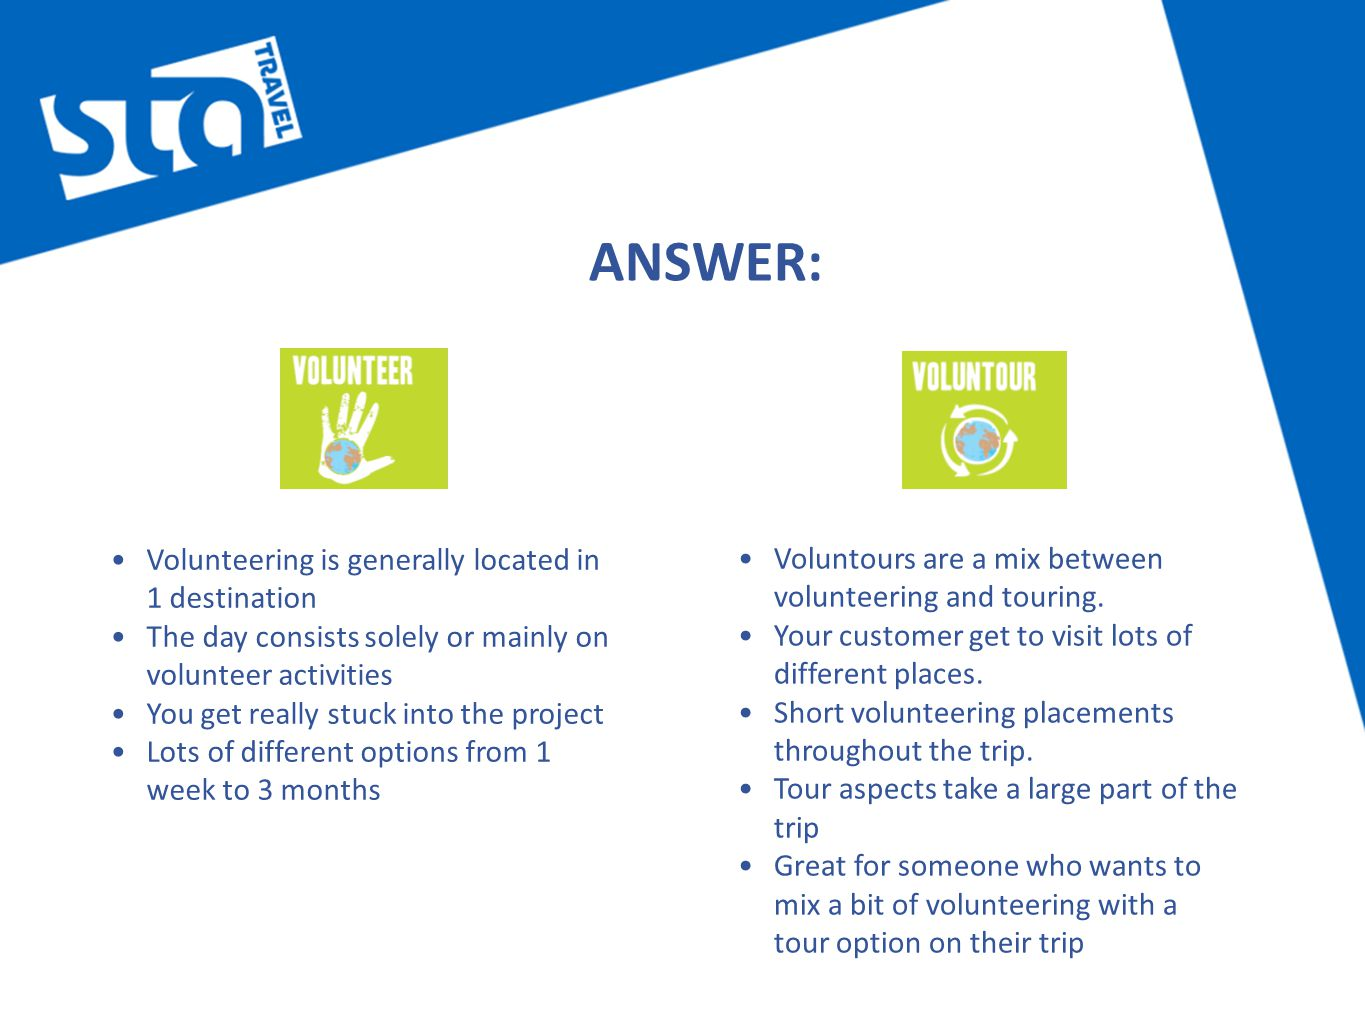 ANSWER: Volunteering is generally located in 1 destination The day consists solely or mainly on volunteer activities You get really stuck into the project Lots of different options from 1 week to 3 months Voluntours are a mix between volunteering and touring.